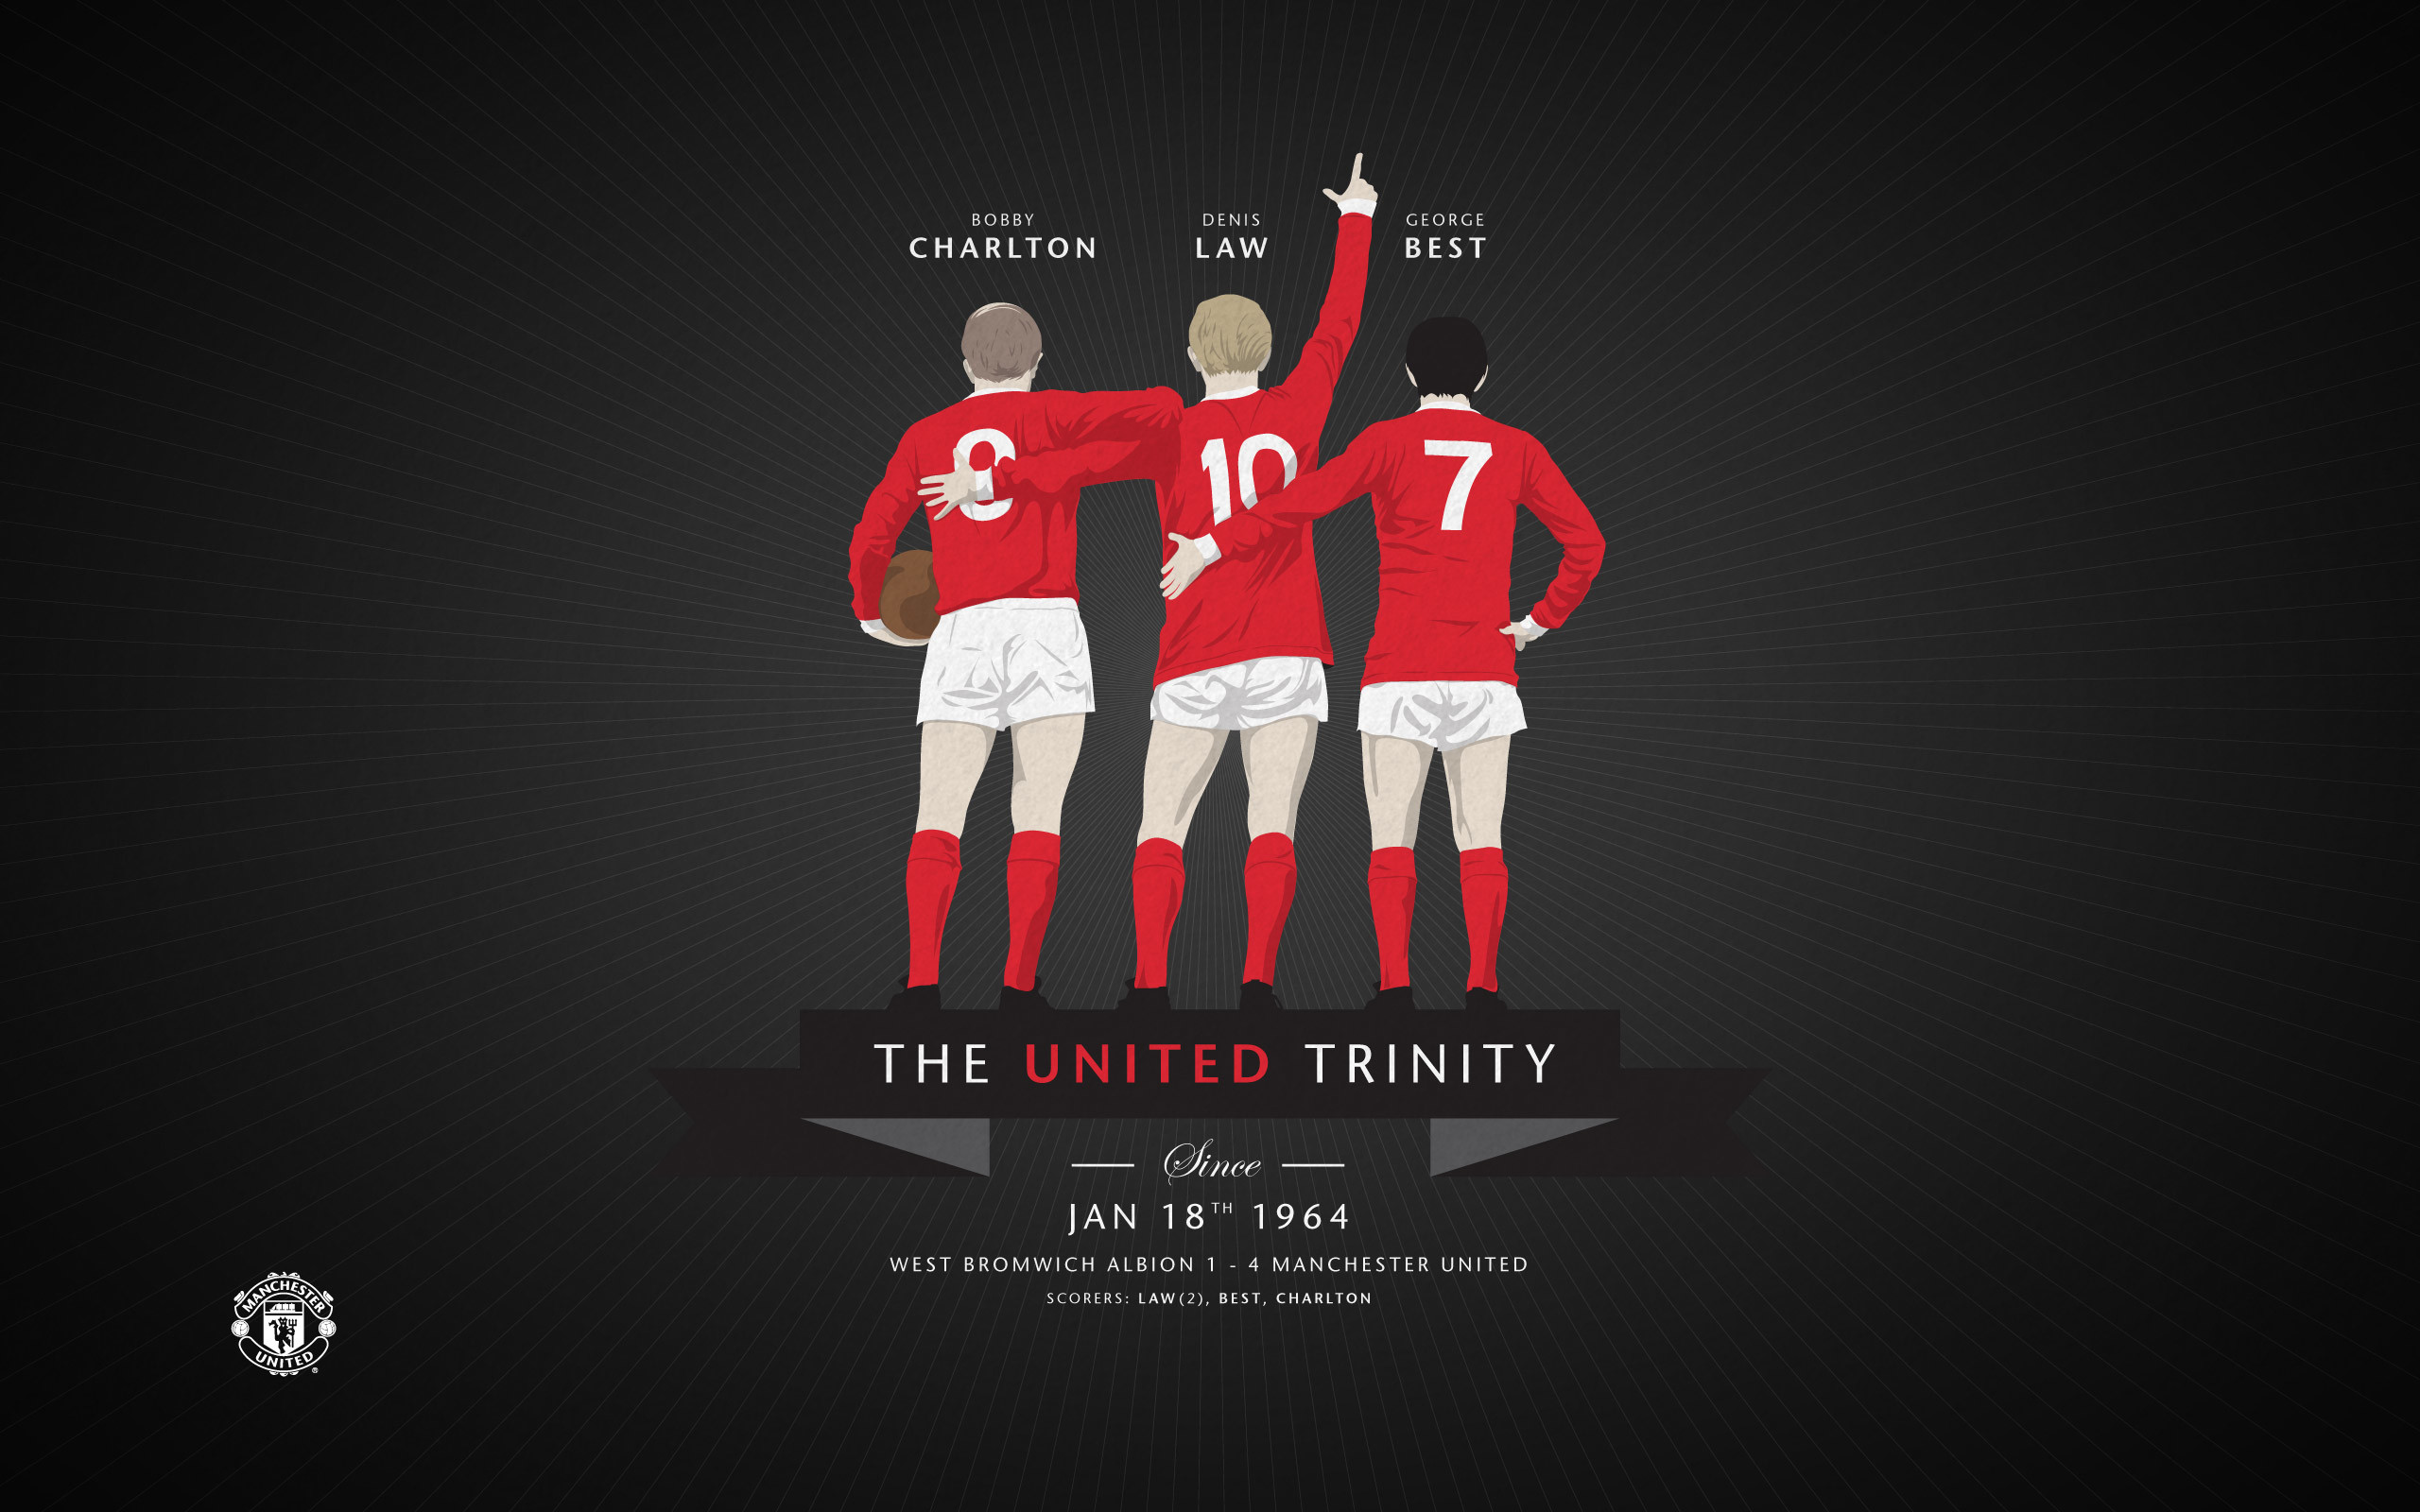 Man utd backgrounds 69 images more wallpaper collections voltagebd Gallery